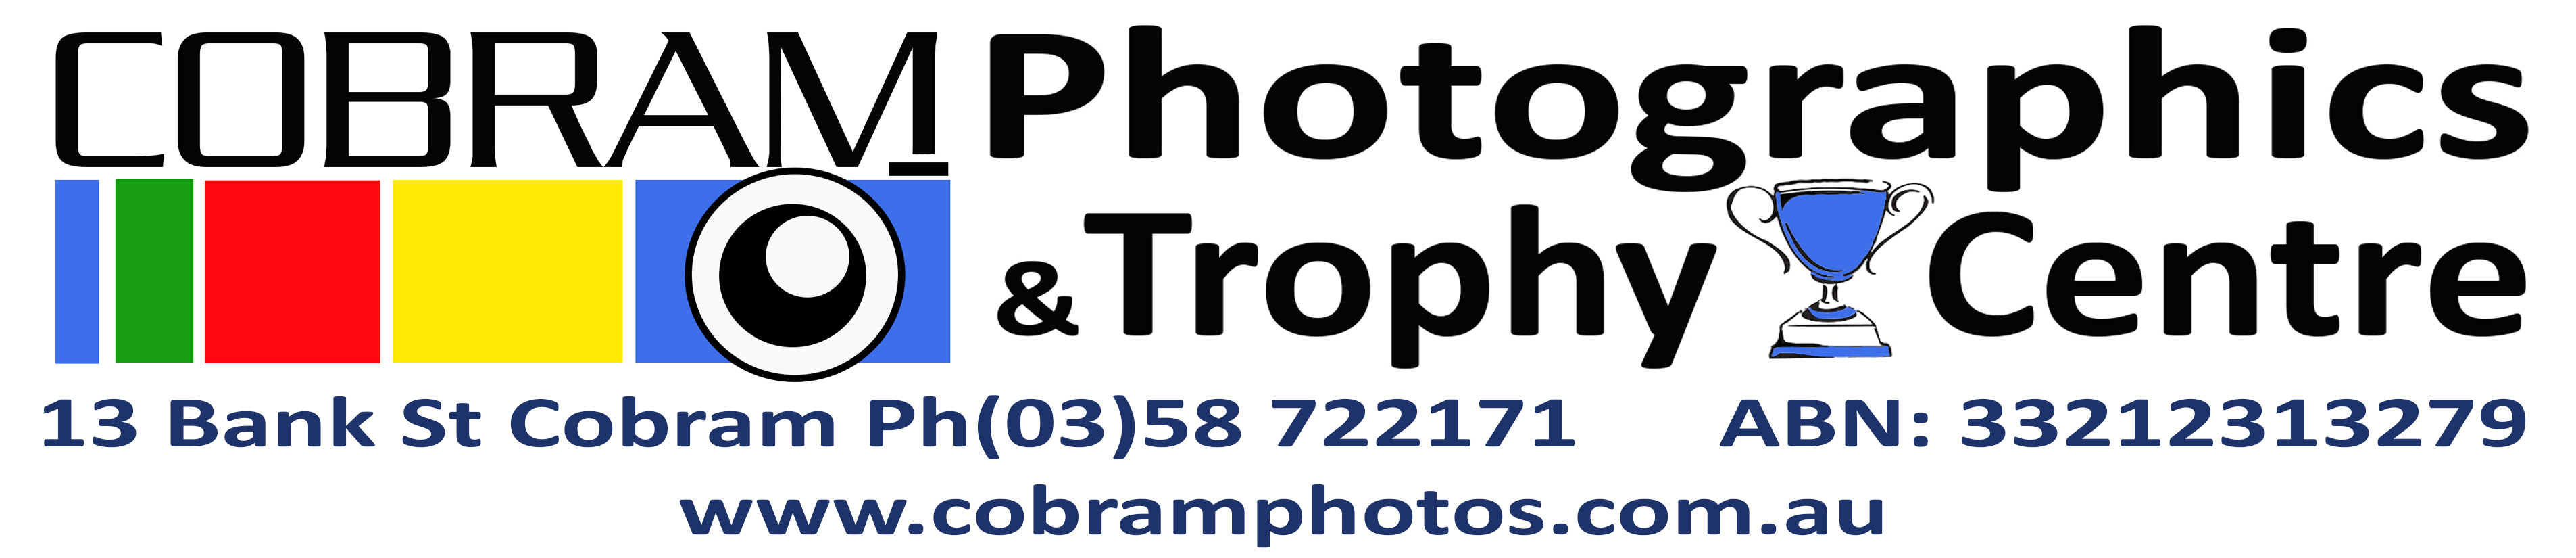 Cobram Photo Trophy